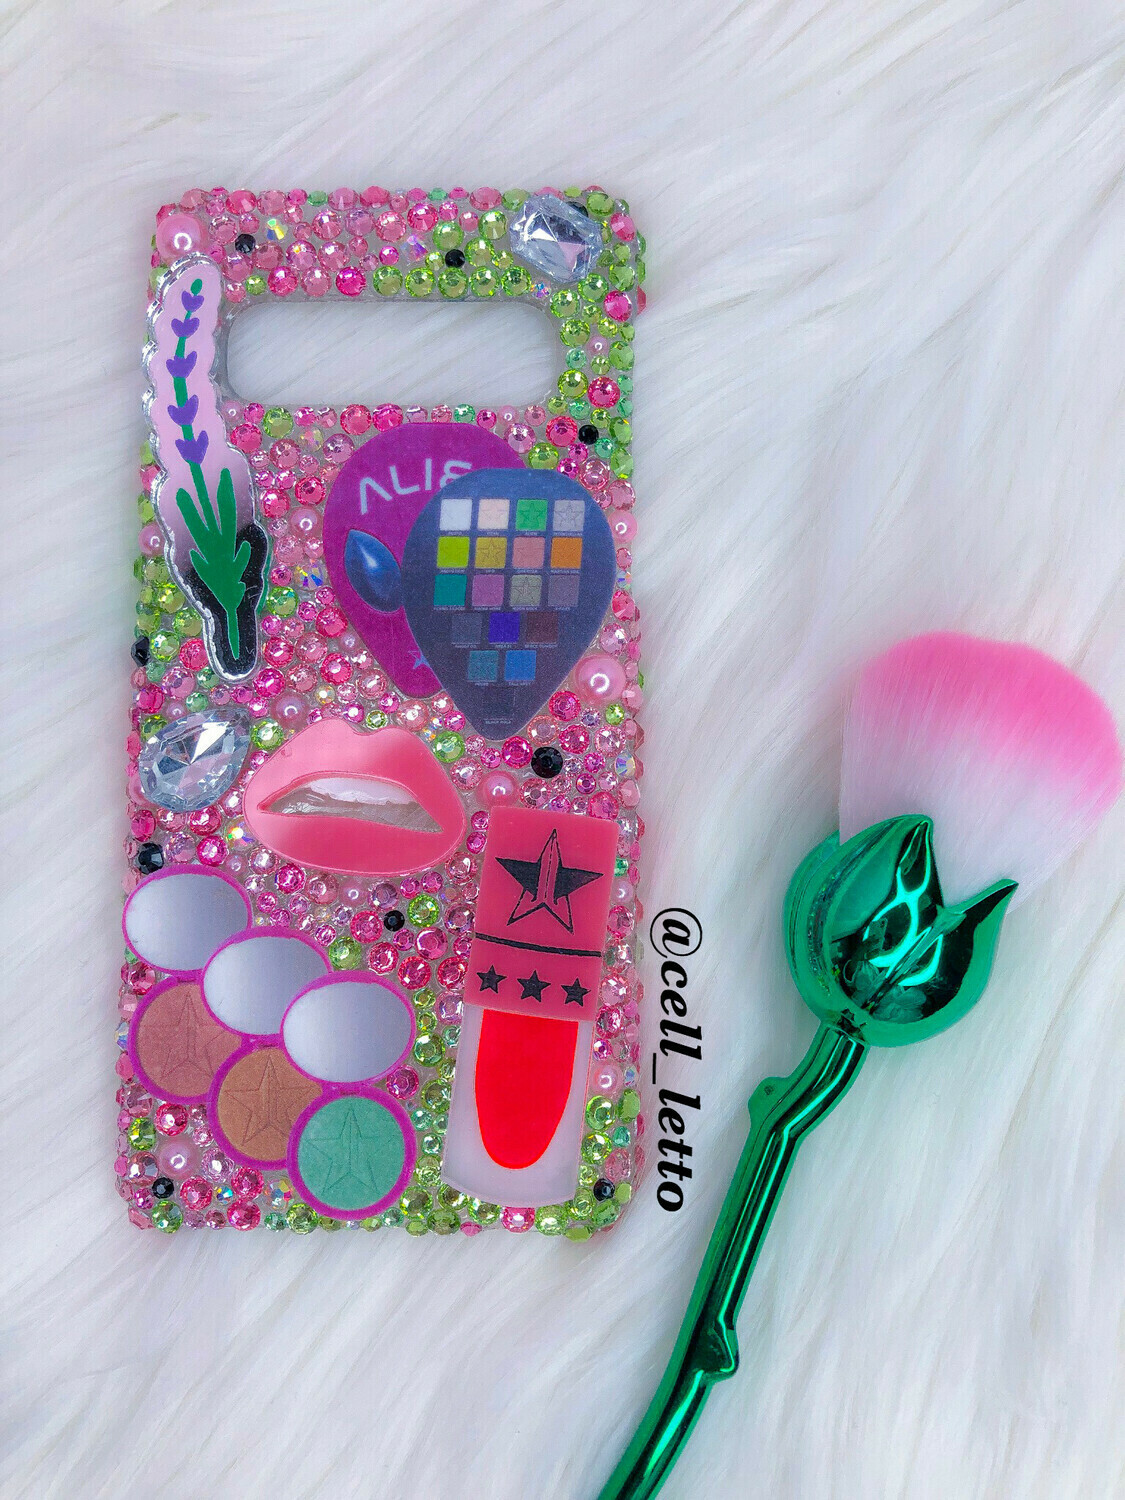 Customized Android Cases Starting At